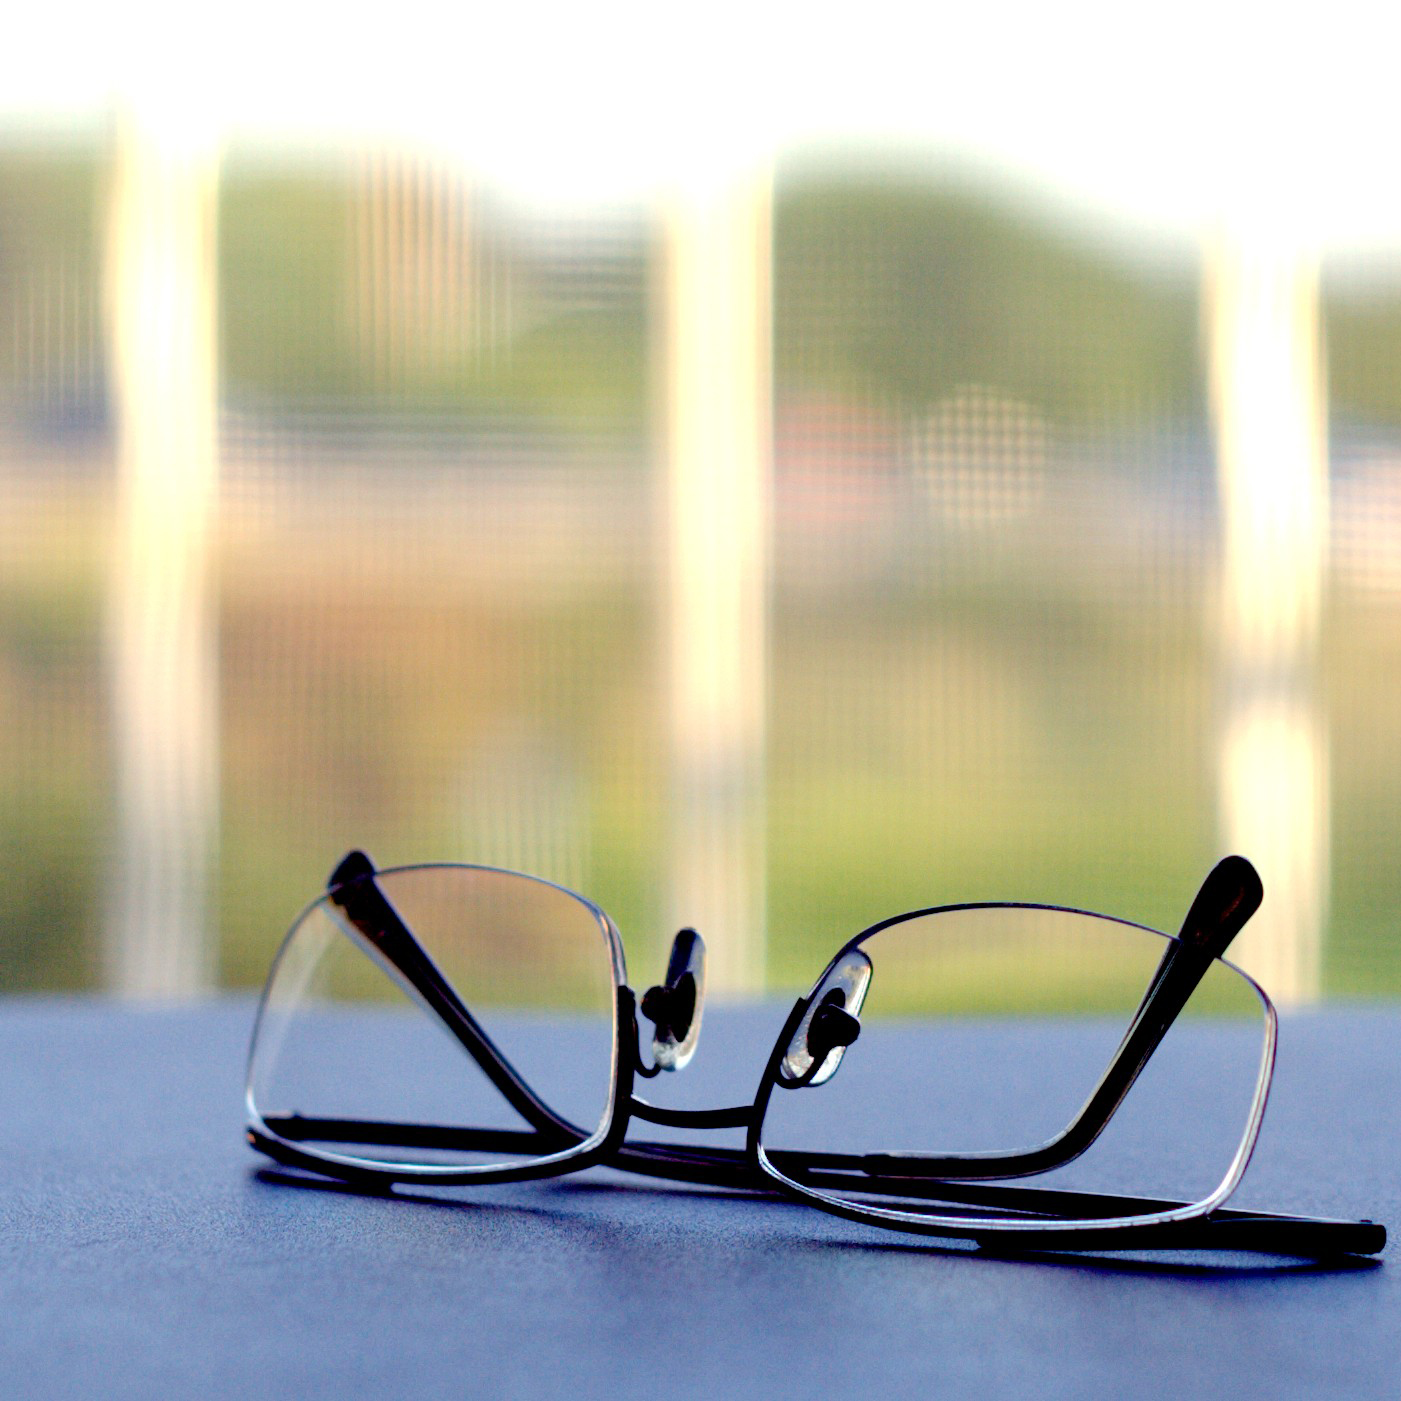 rimless glasses featured